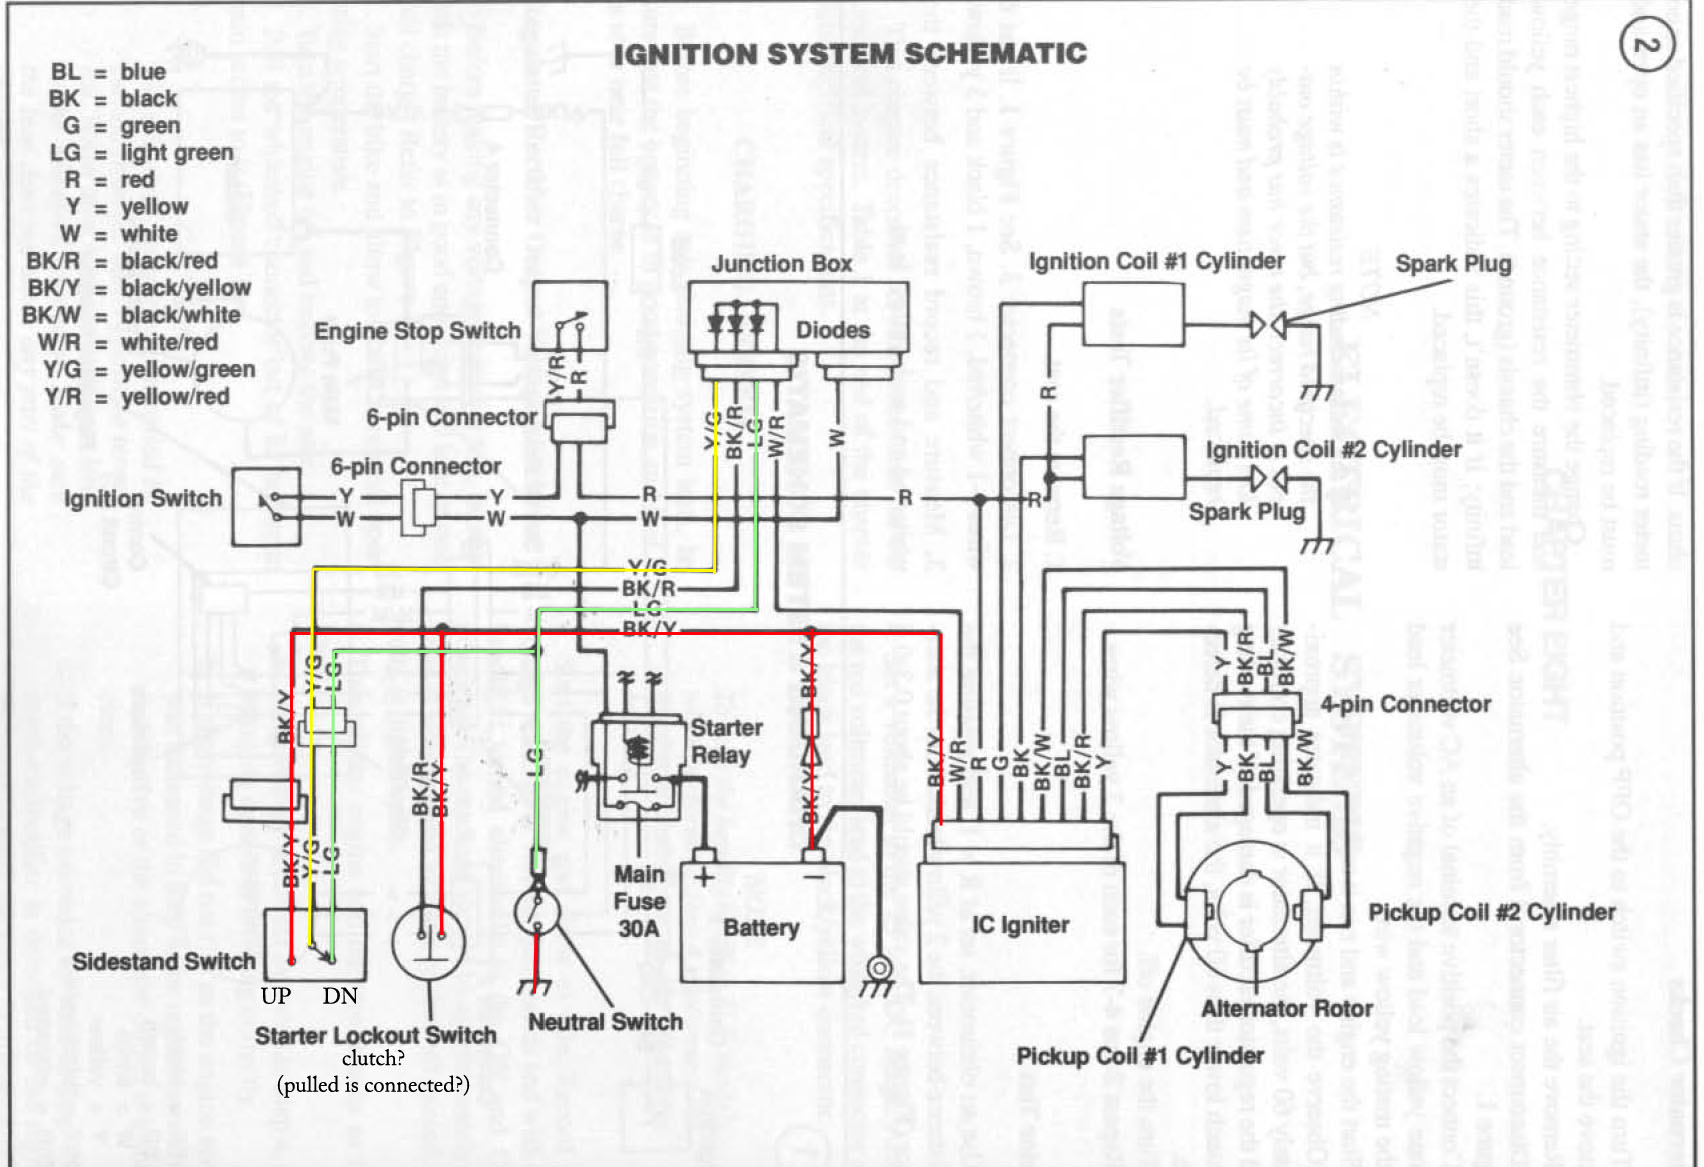 Kawasaki_EX_500_ignition kawasaki klf 300 wiring diagram kawasaki mule engine diagram ninja 250r wiring diagram at bayanpartner.co